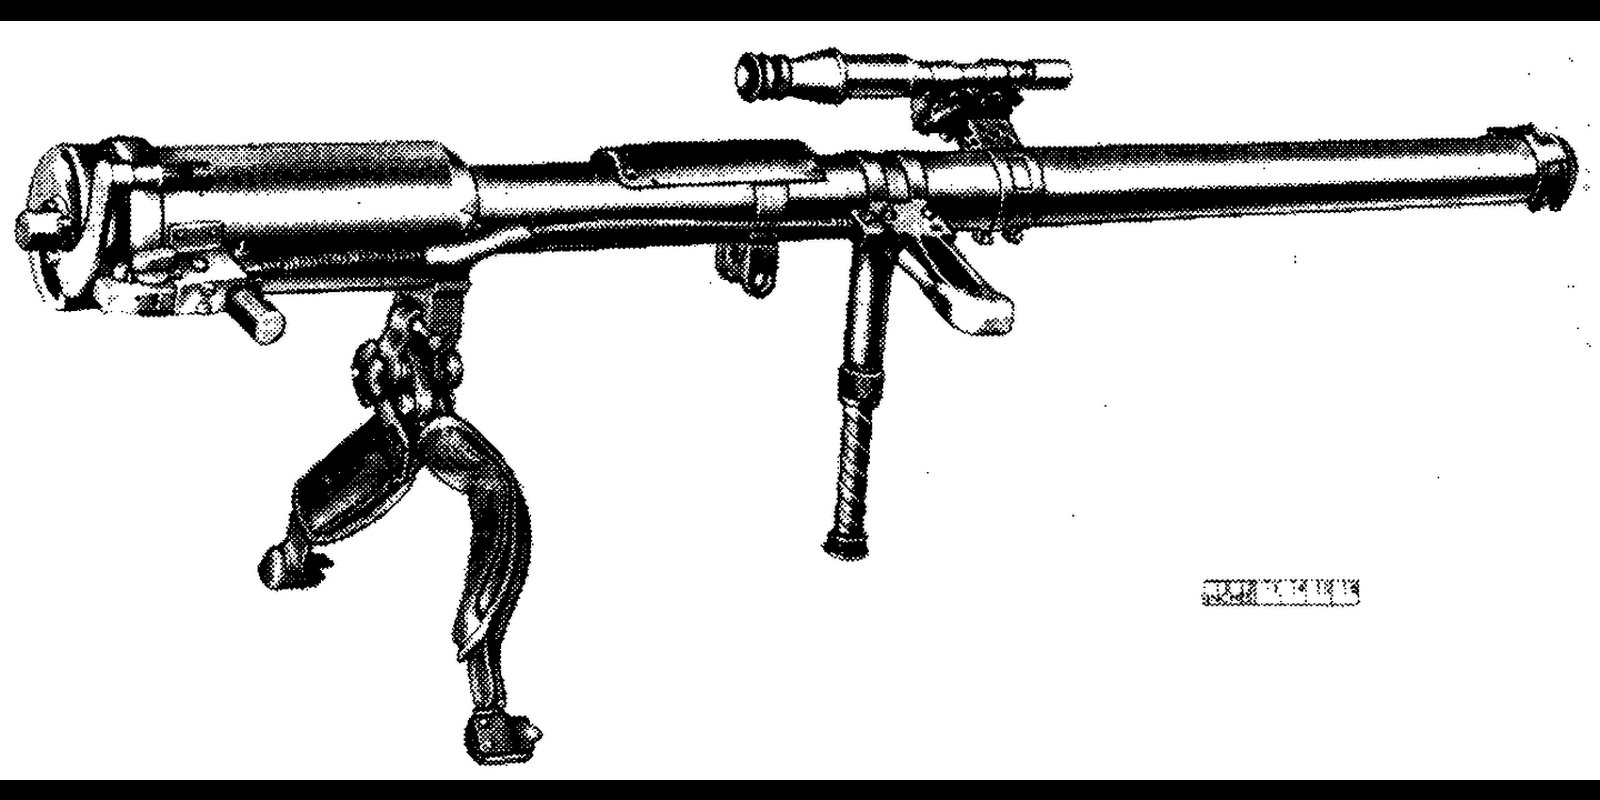 1 M18 57mm Recoilless Rifle Hd Wallpapers